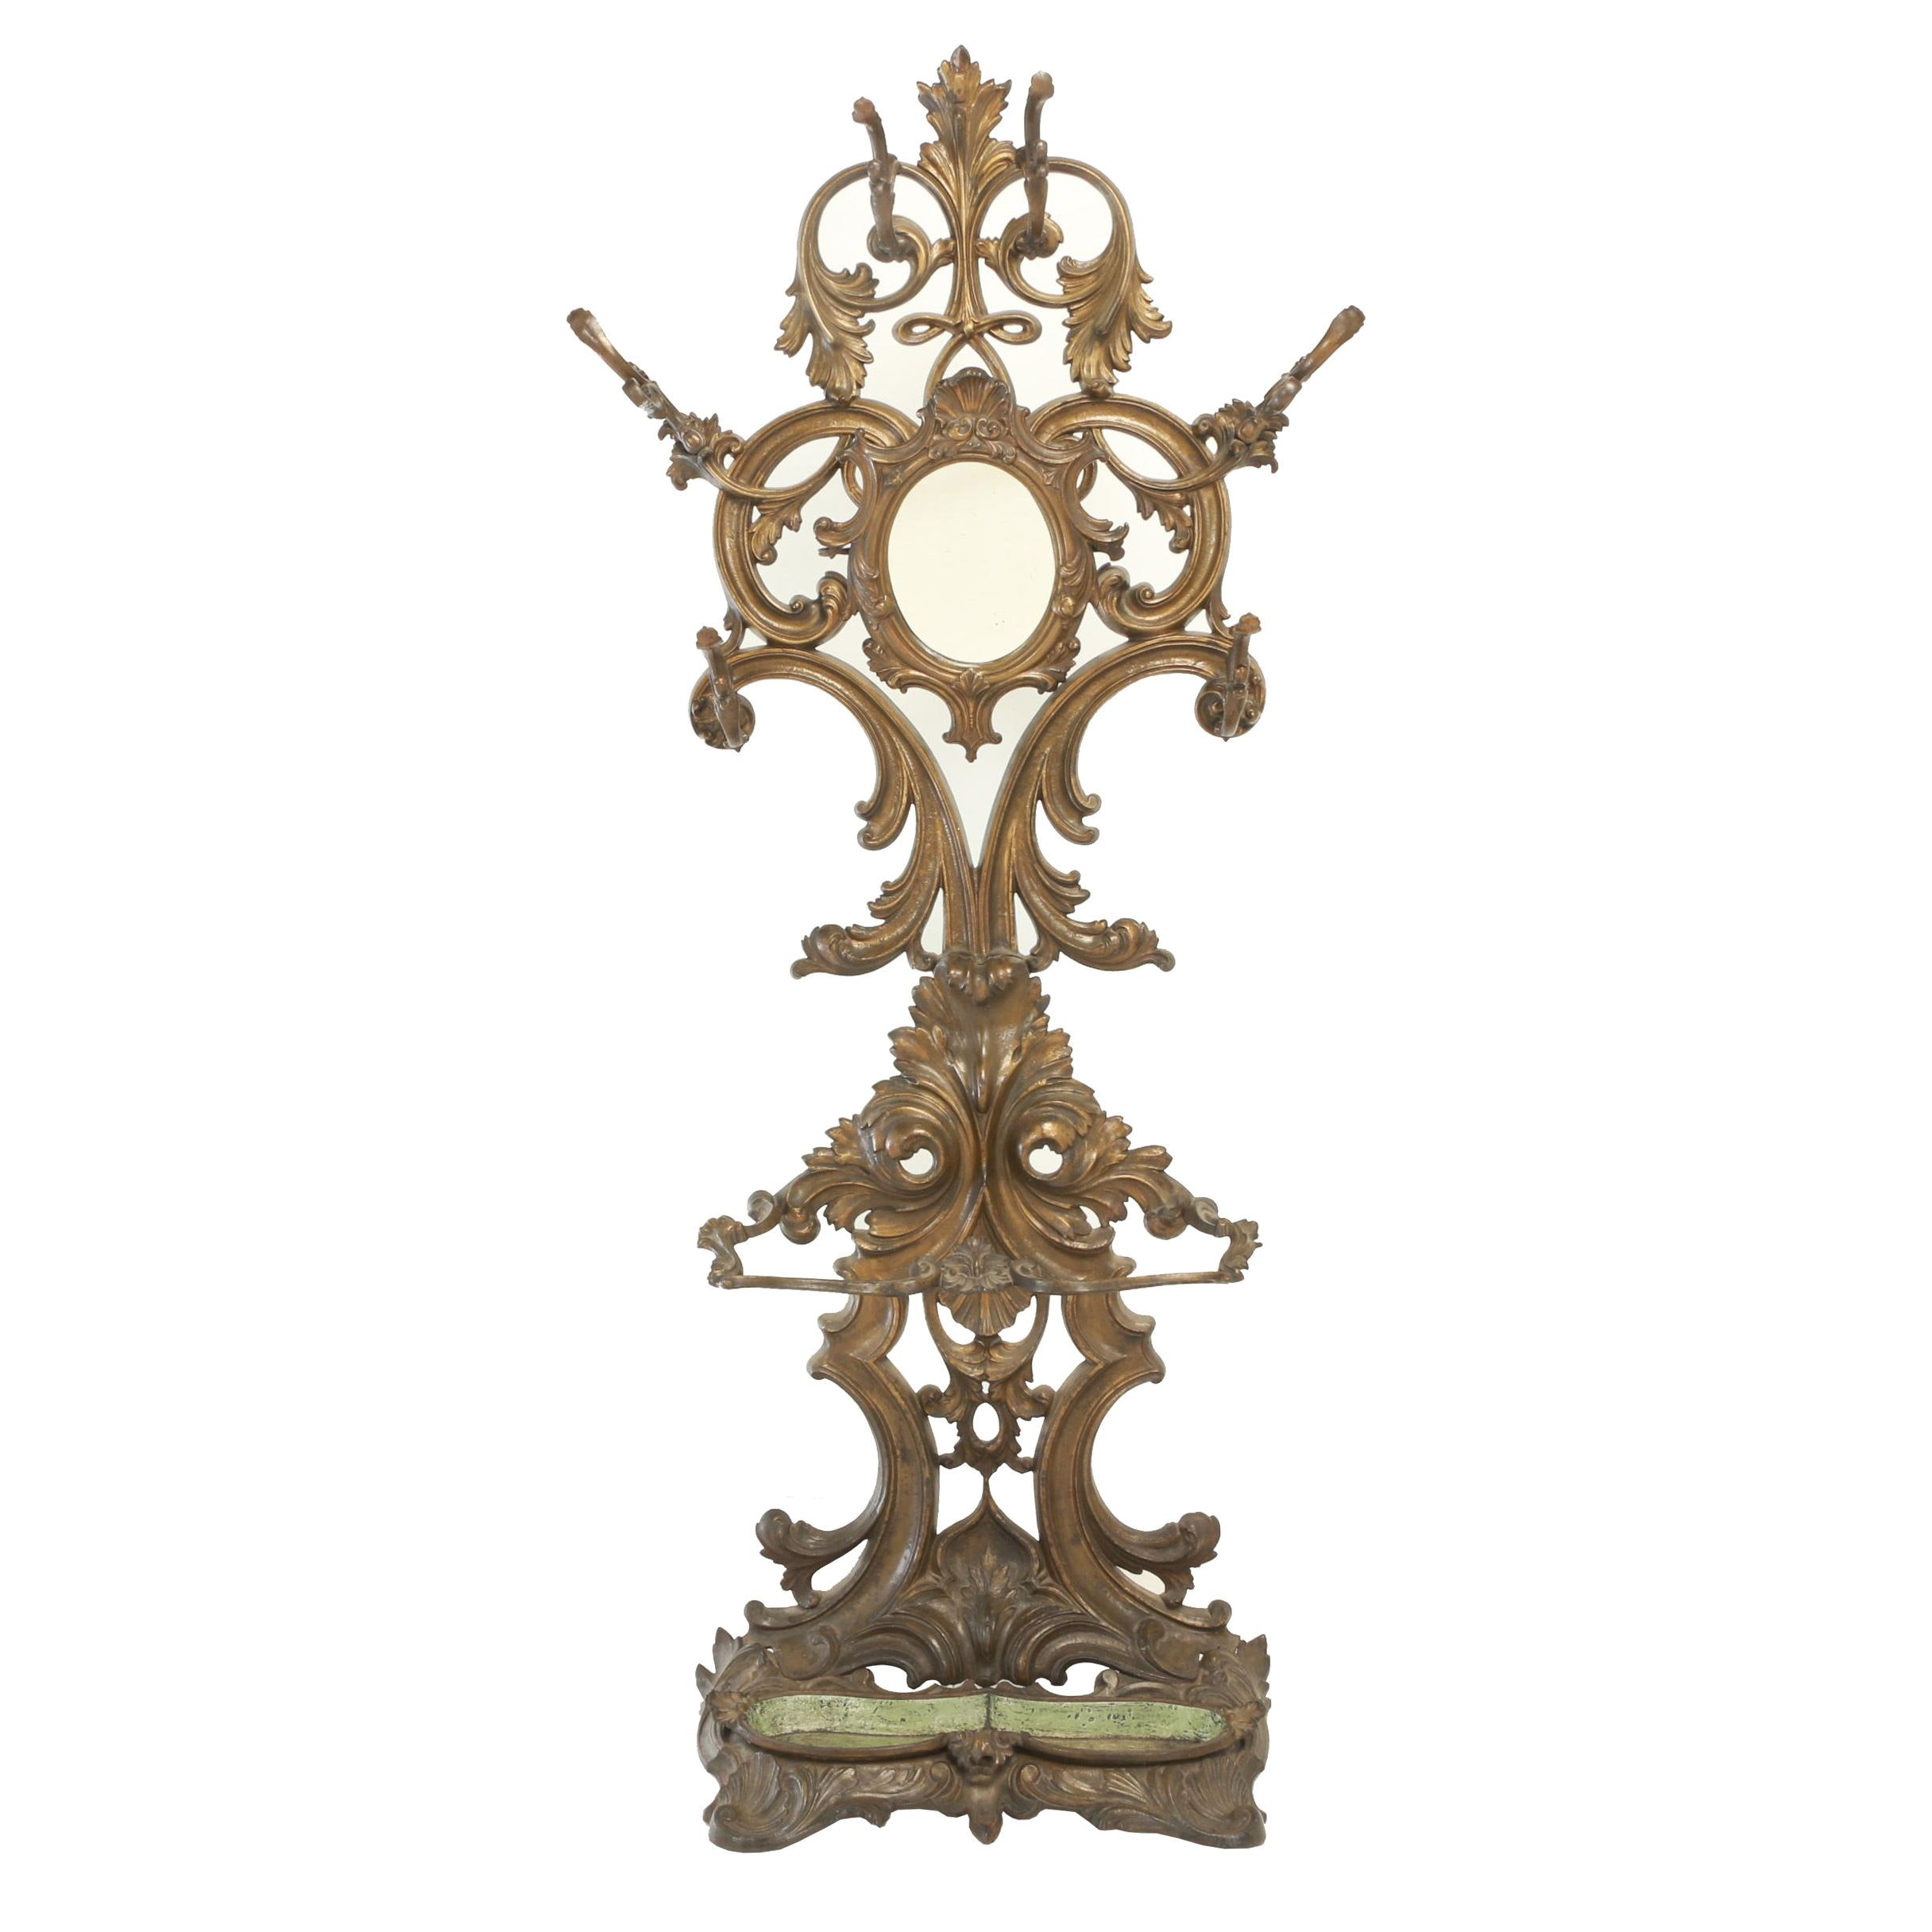 Victorian Rococo Revival Cast Iron and Mirrored Hall Stand, Circa 1860